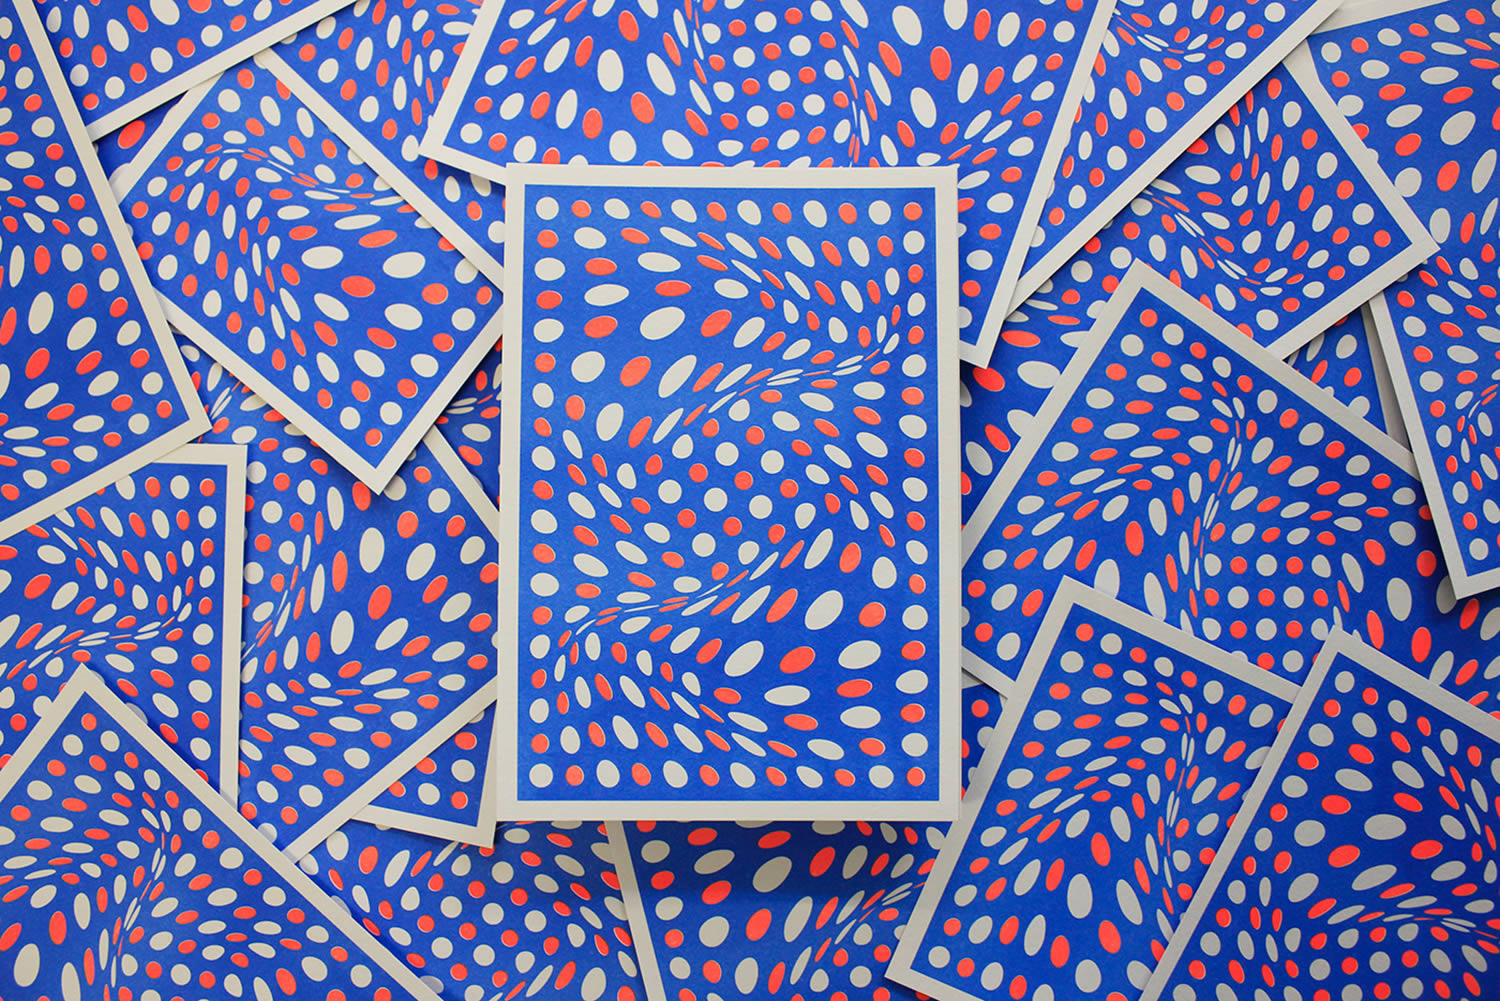 pool, op art, poster design with moving dots